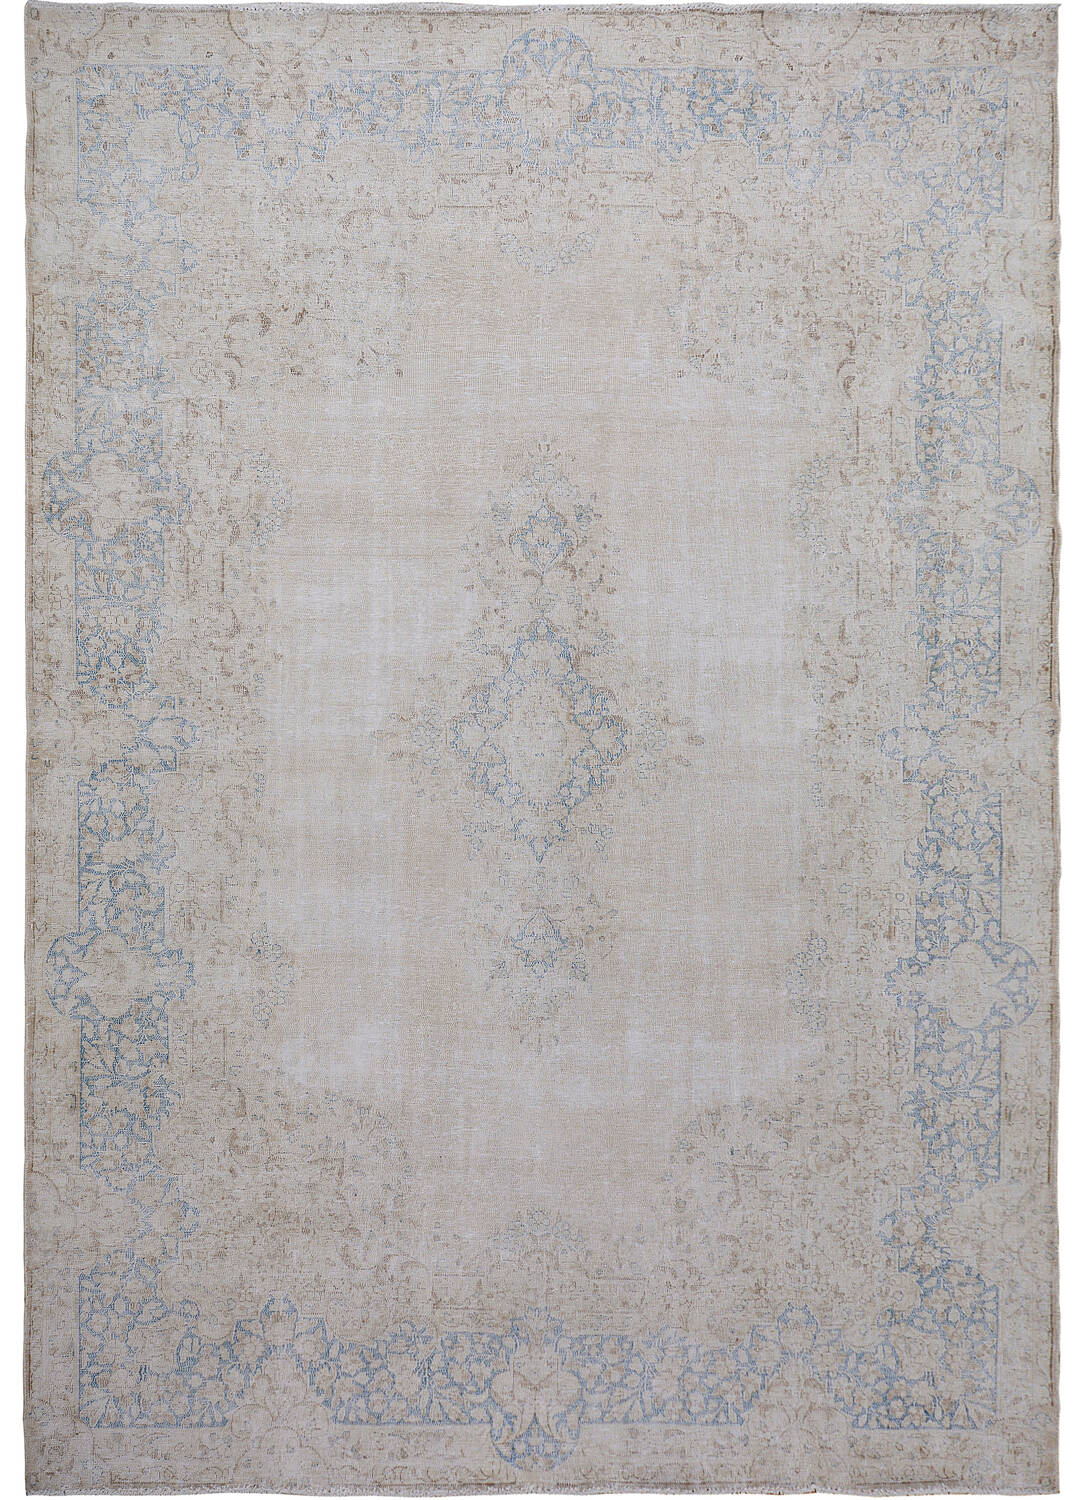 Muted Antique Floral Kerman Persian Distressed Area Rug 9x12 image 1